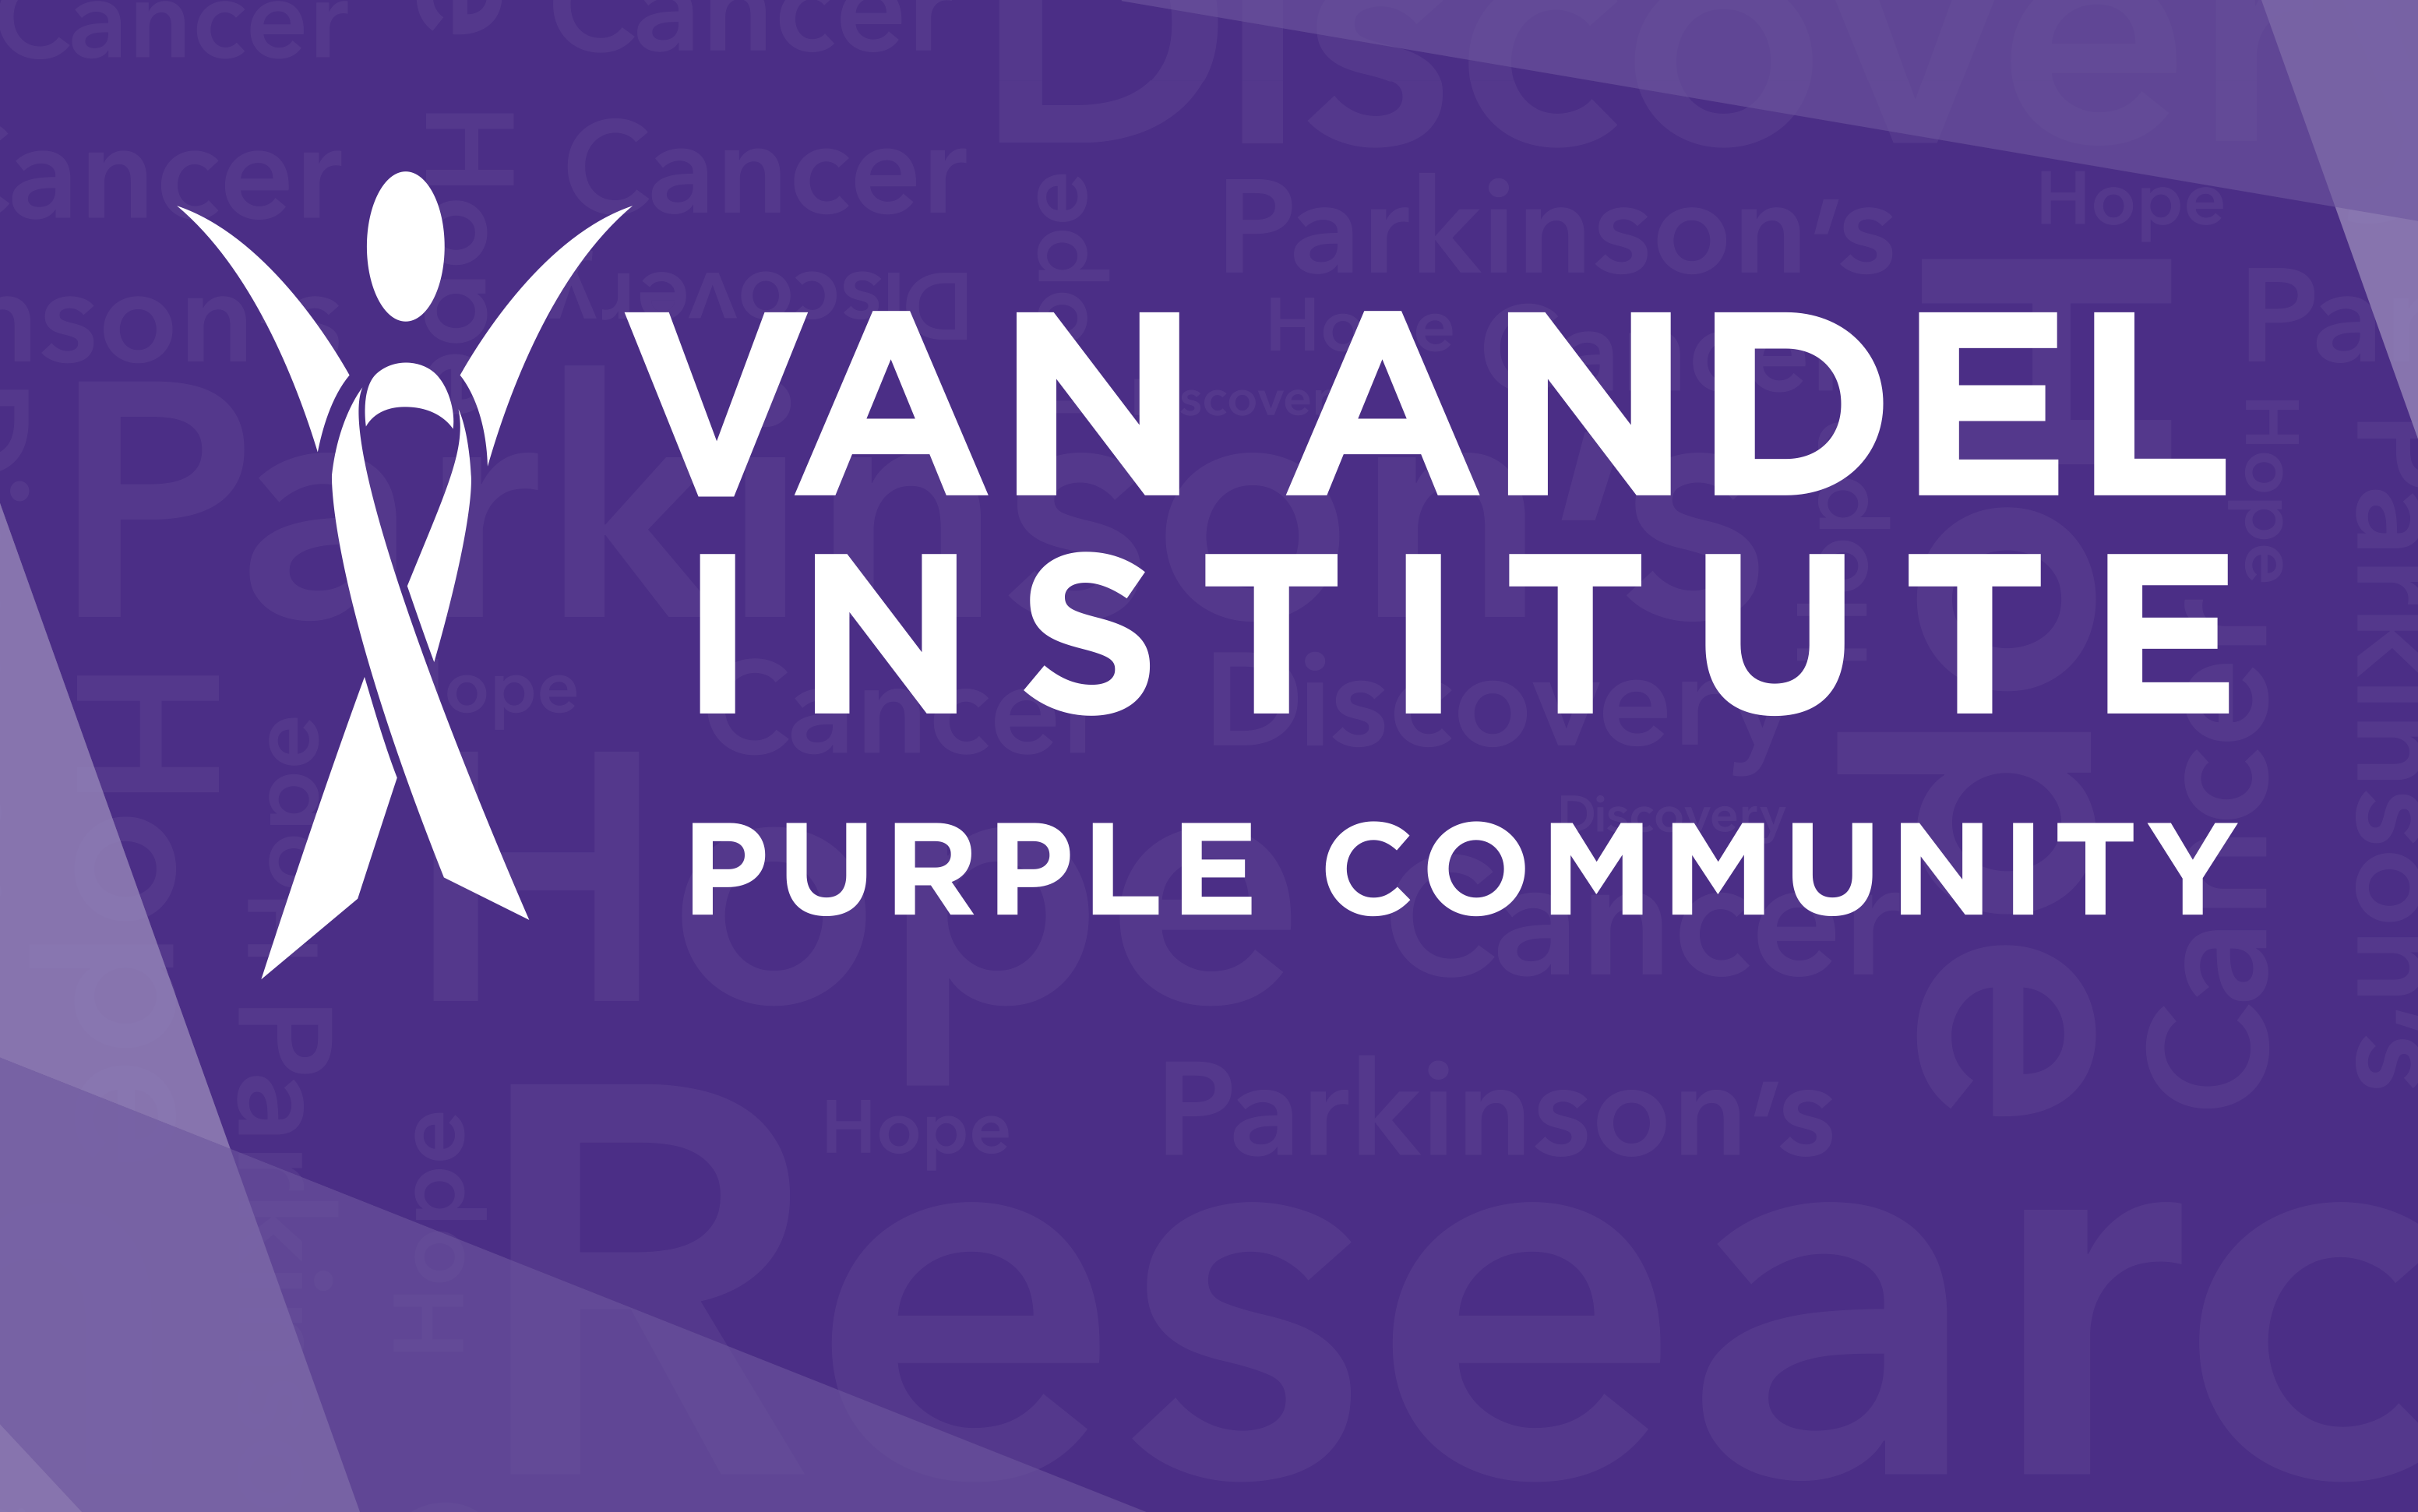 Van Andel Institute Purple Community Banner